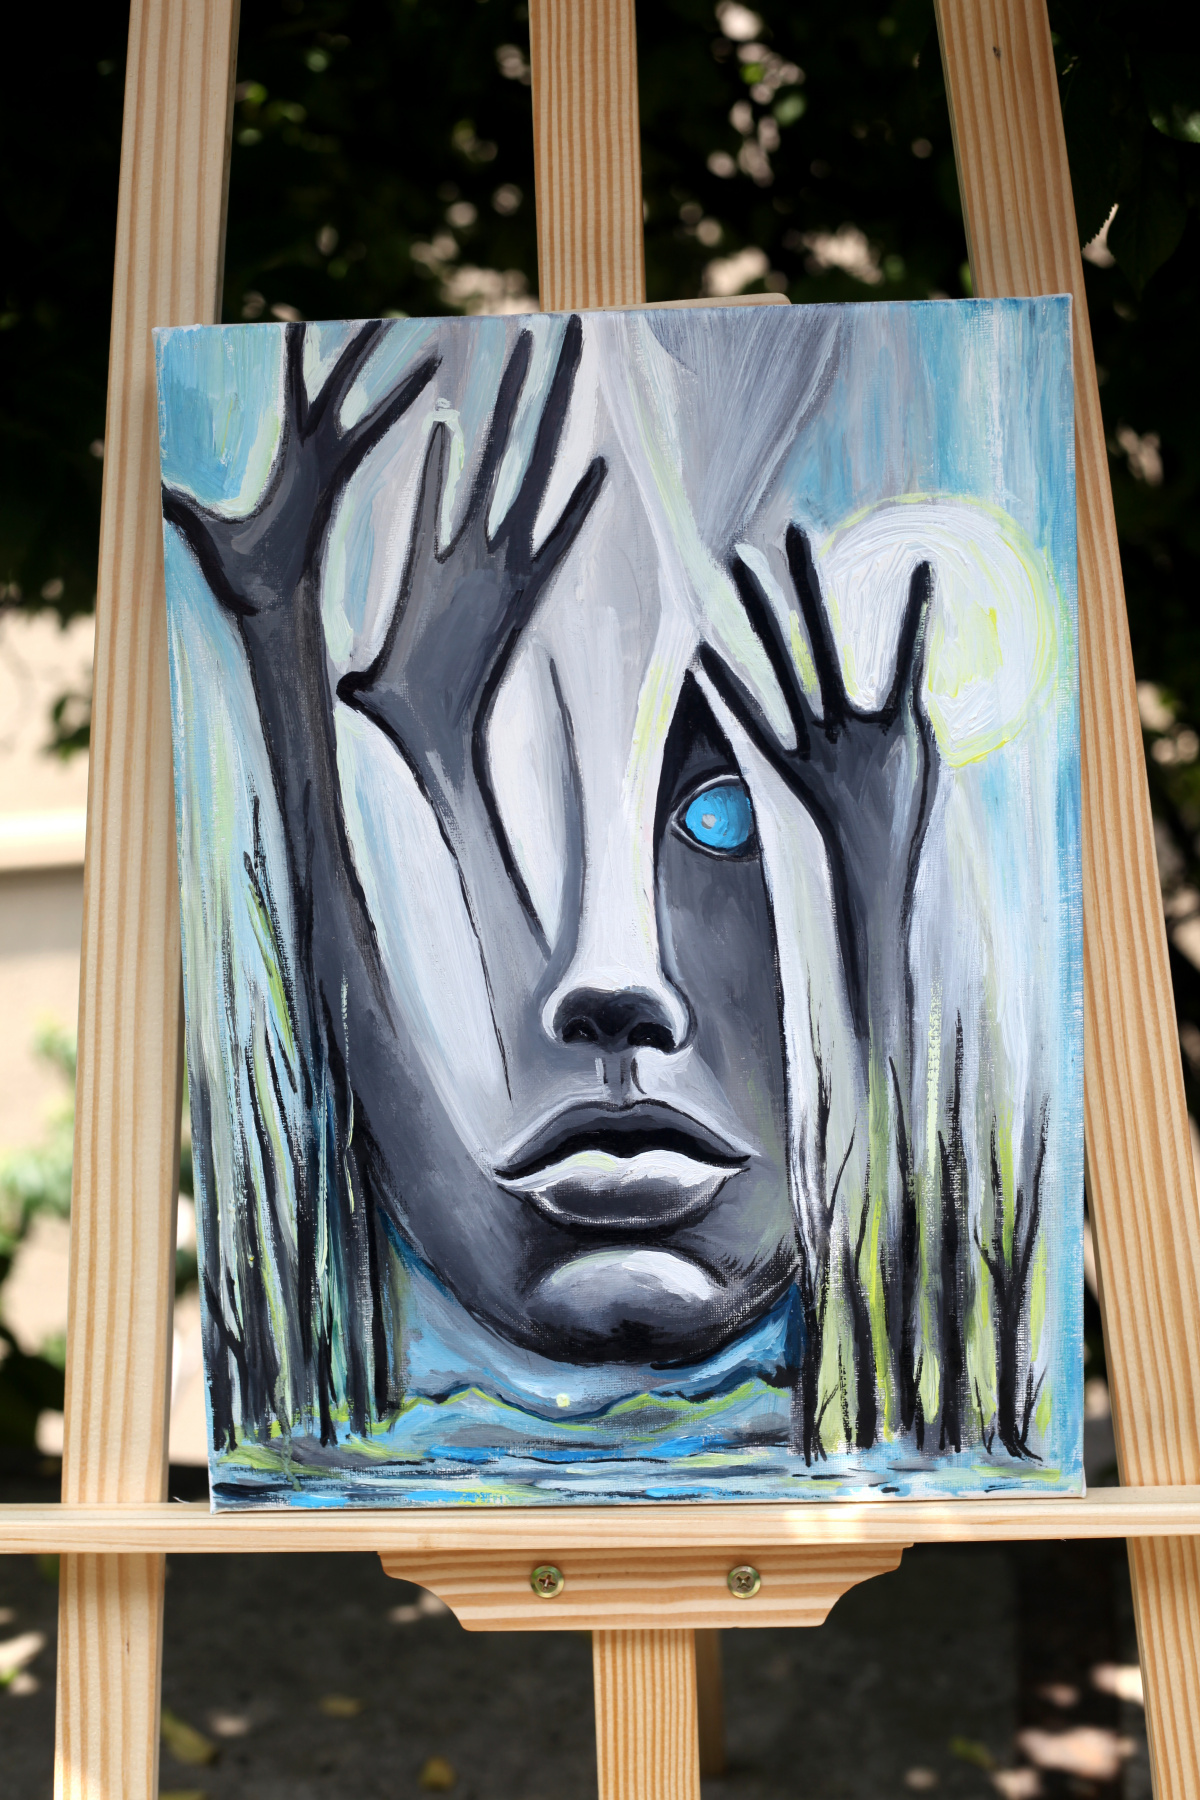 Michael Tchitchinadze (13). Deadly existence - canvas 40 x 30. oil. Price 600 $